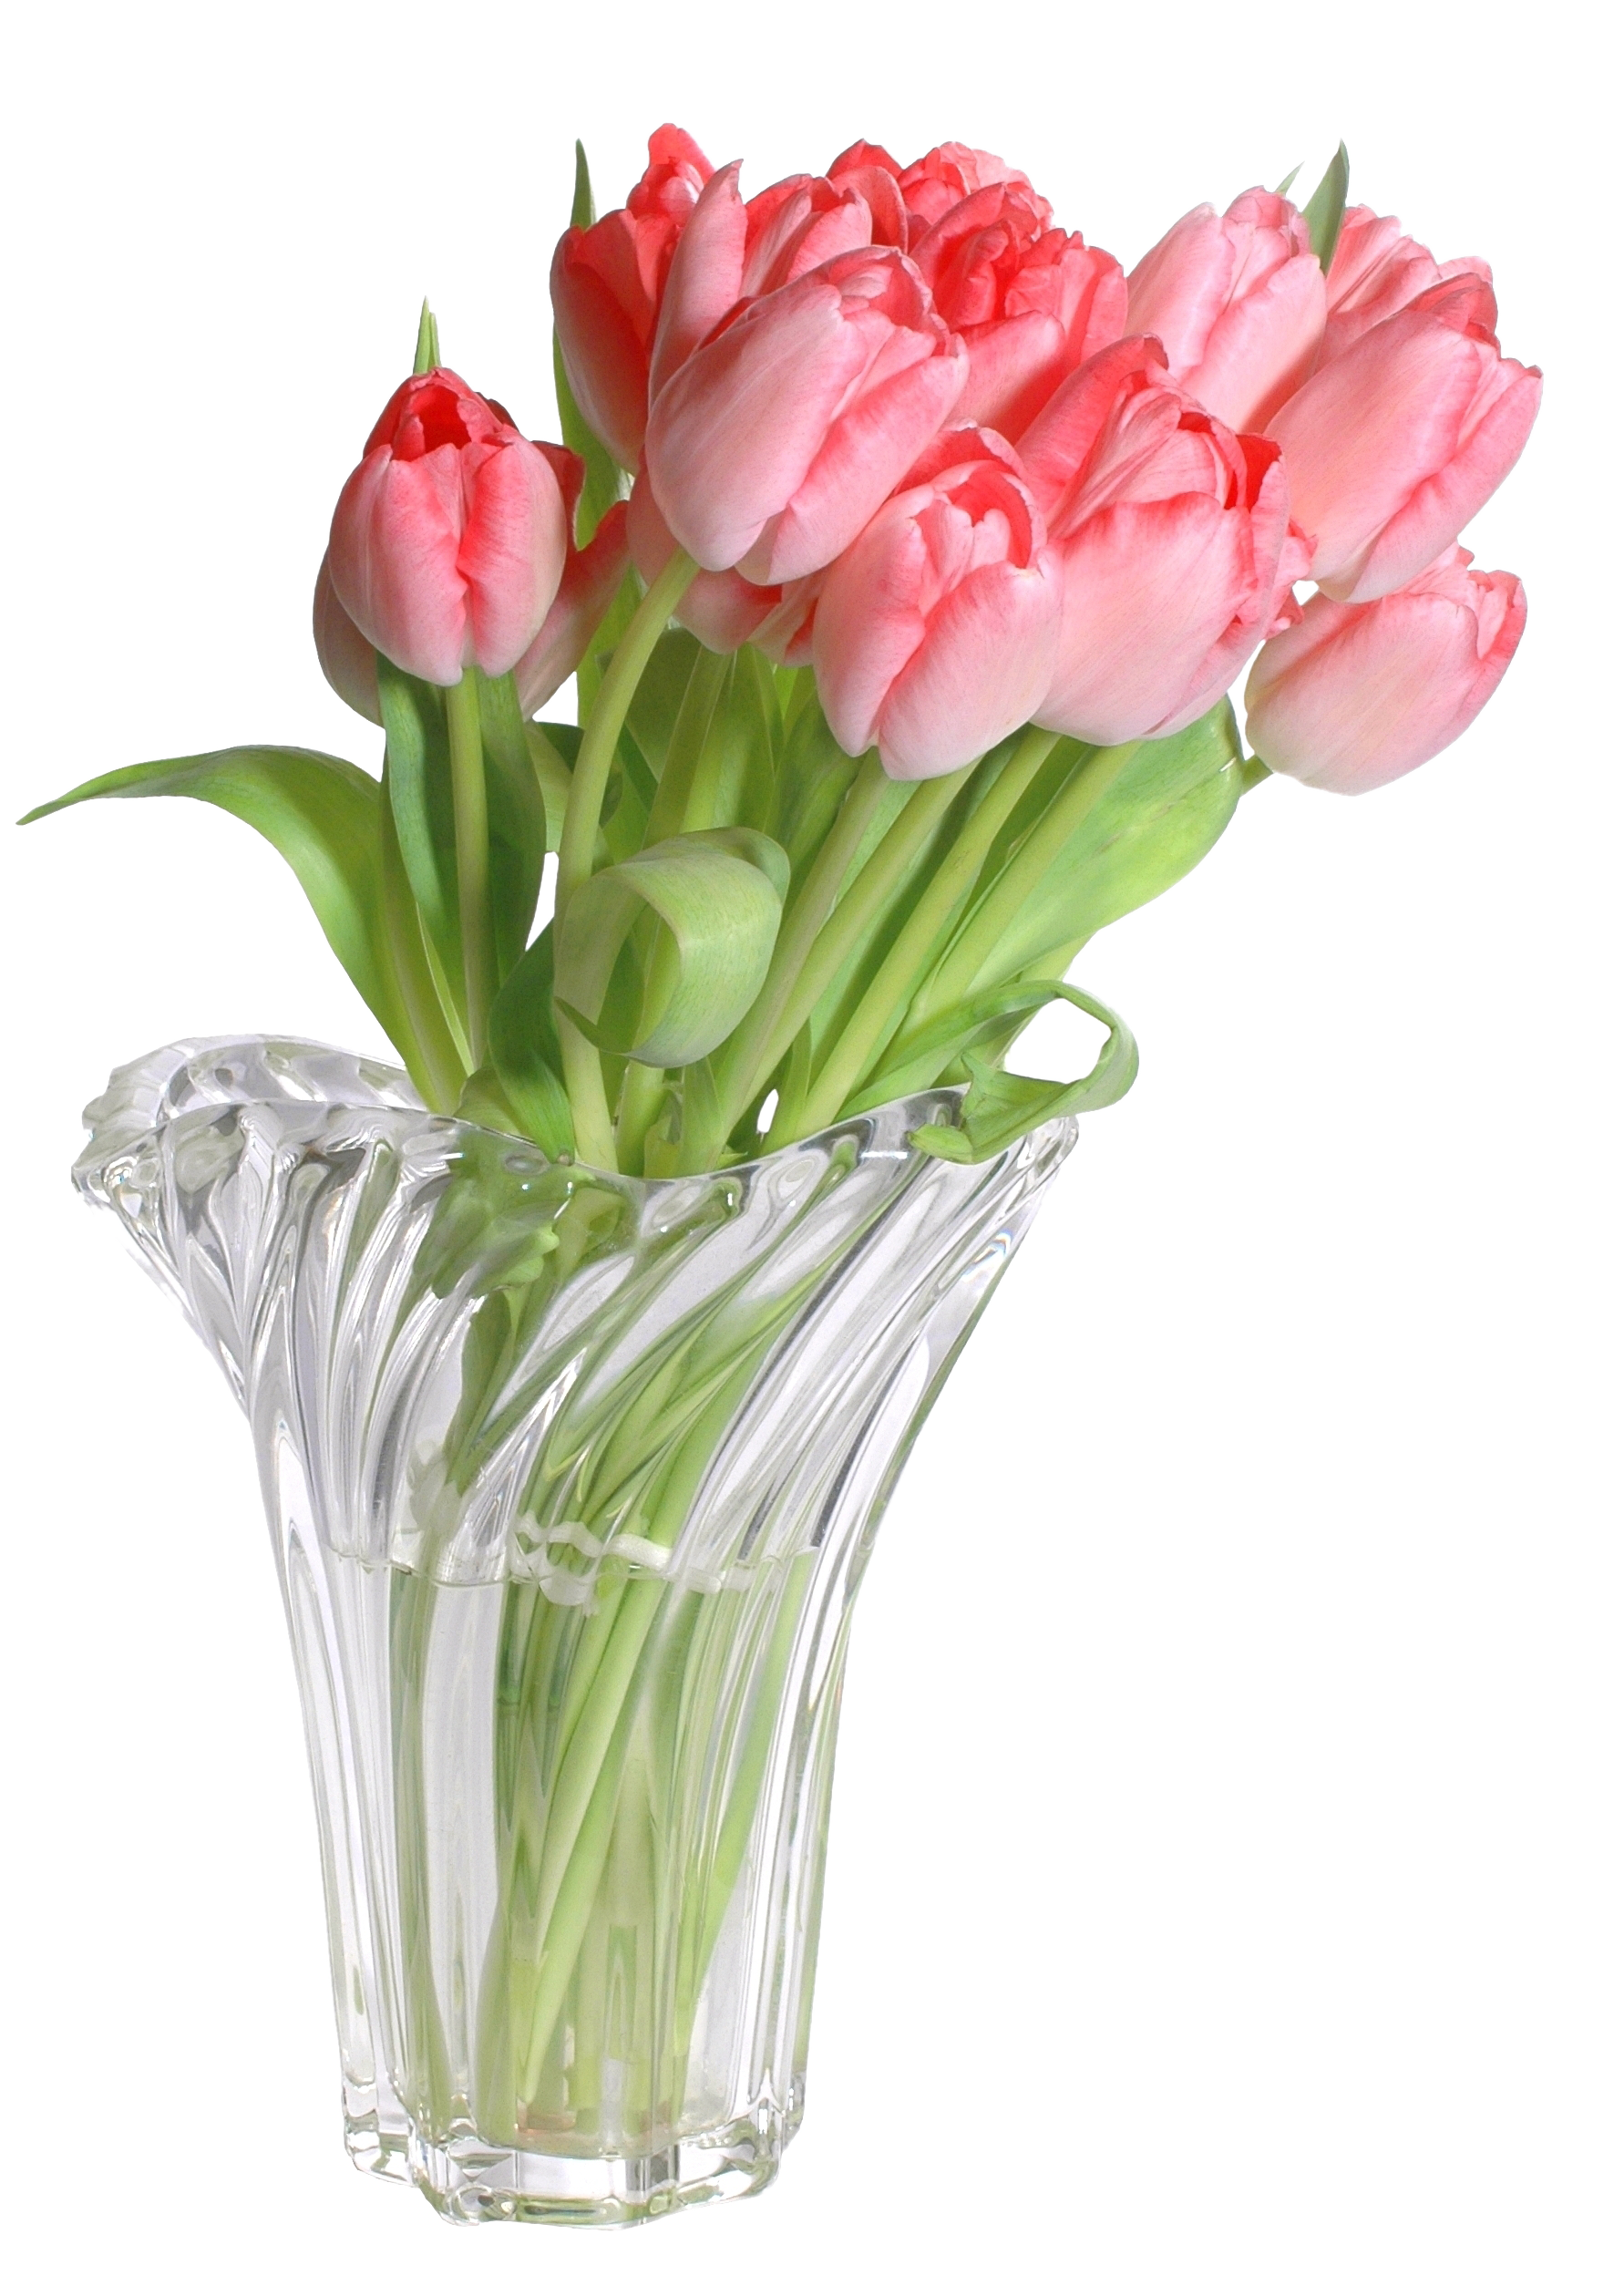 Flowers in vase png. Images free download